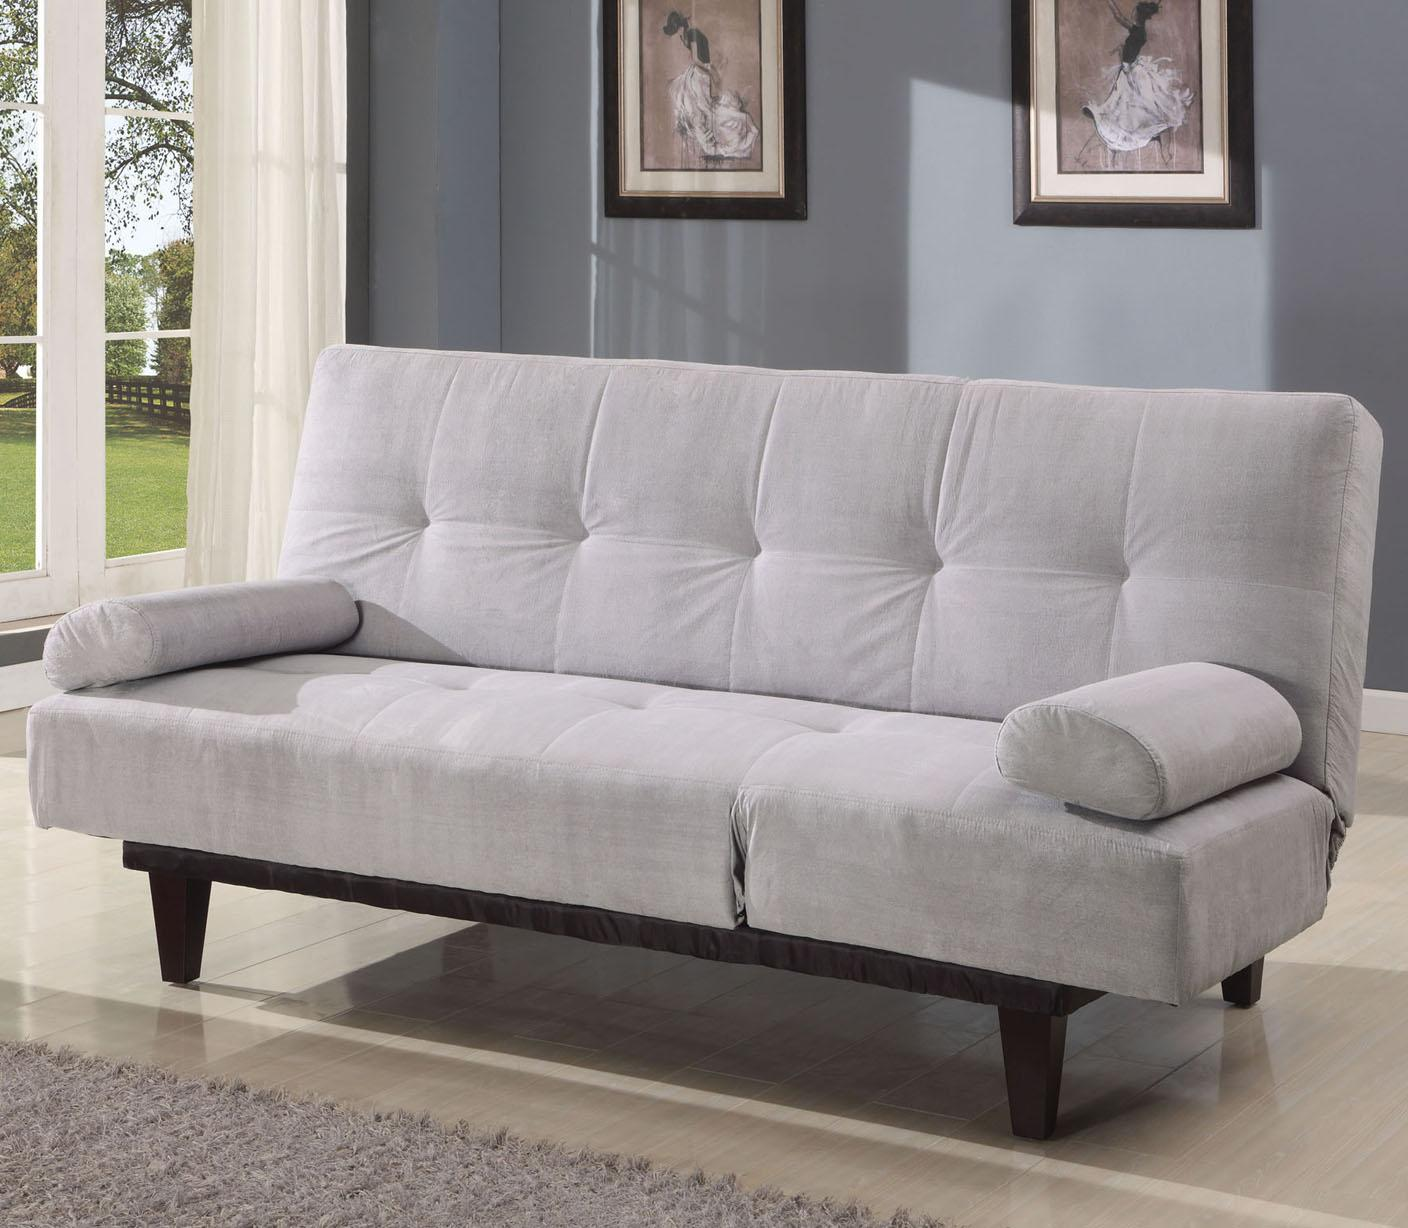 Acme Furniture Cybil  Silver Adjustable Sofa With 2 Pillows - Item Number: 05855W-SI